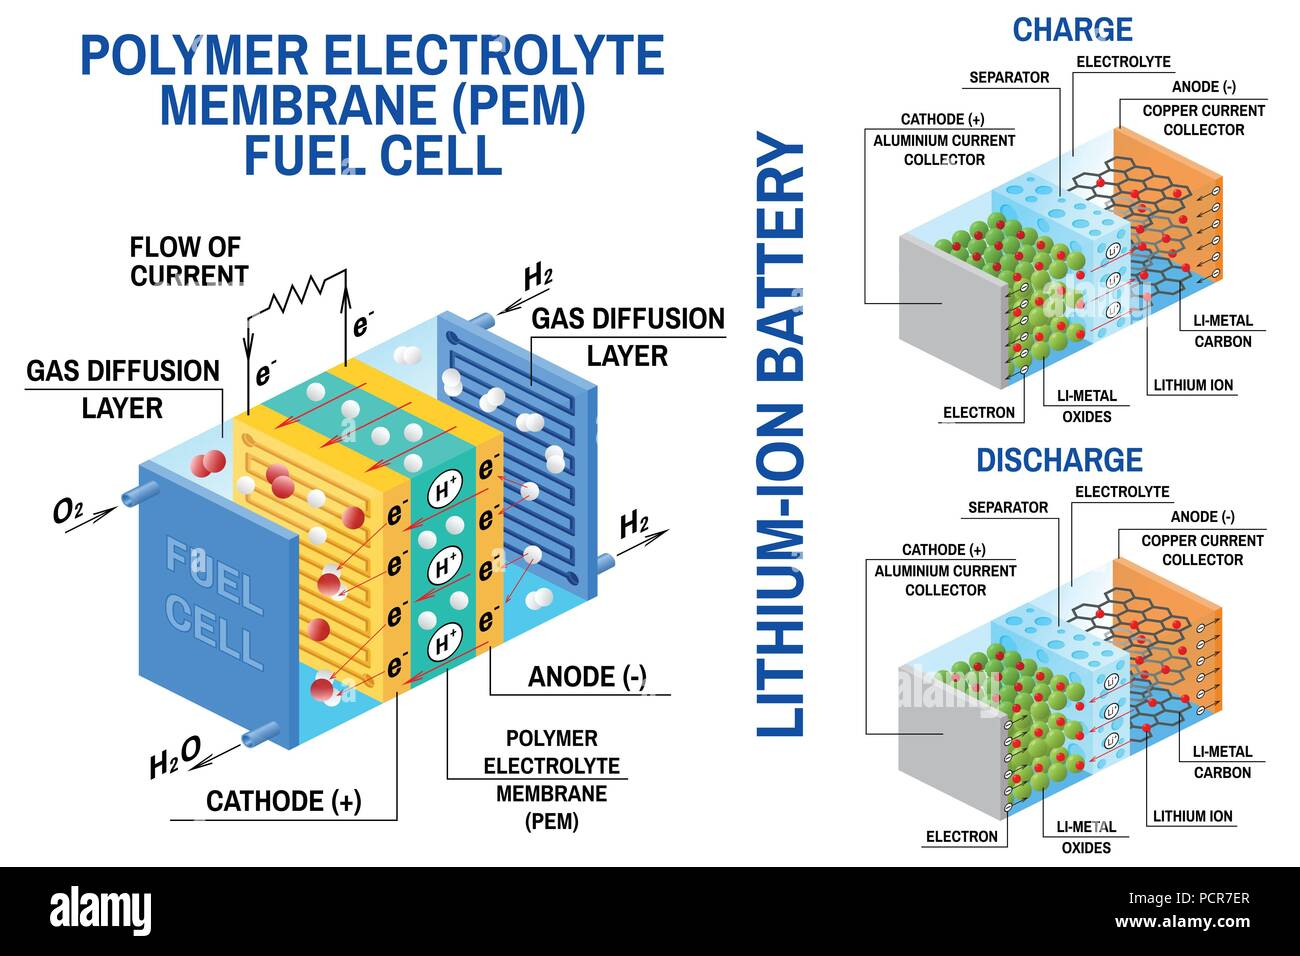 lithium ion cell diagram ecu wiring honda civic fuel and li battery vector device that converts chemical potential energy into electrical uses hydrogen gas oxygen